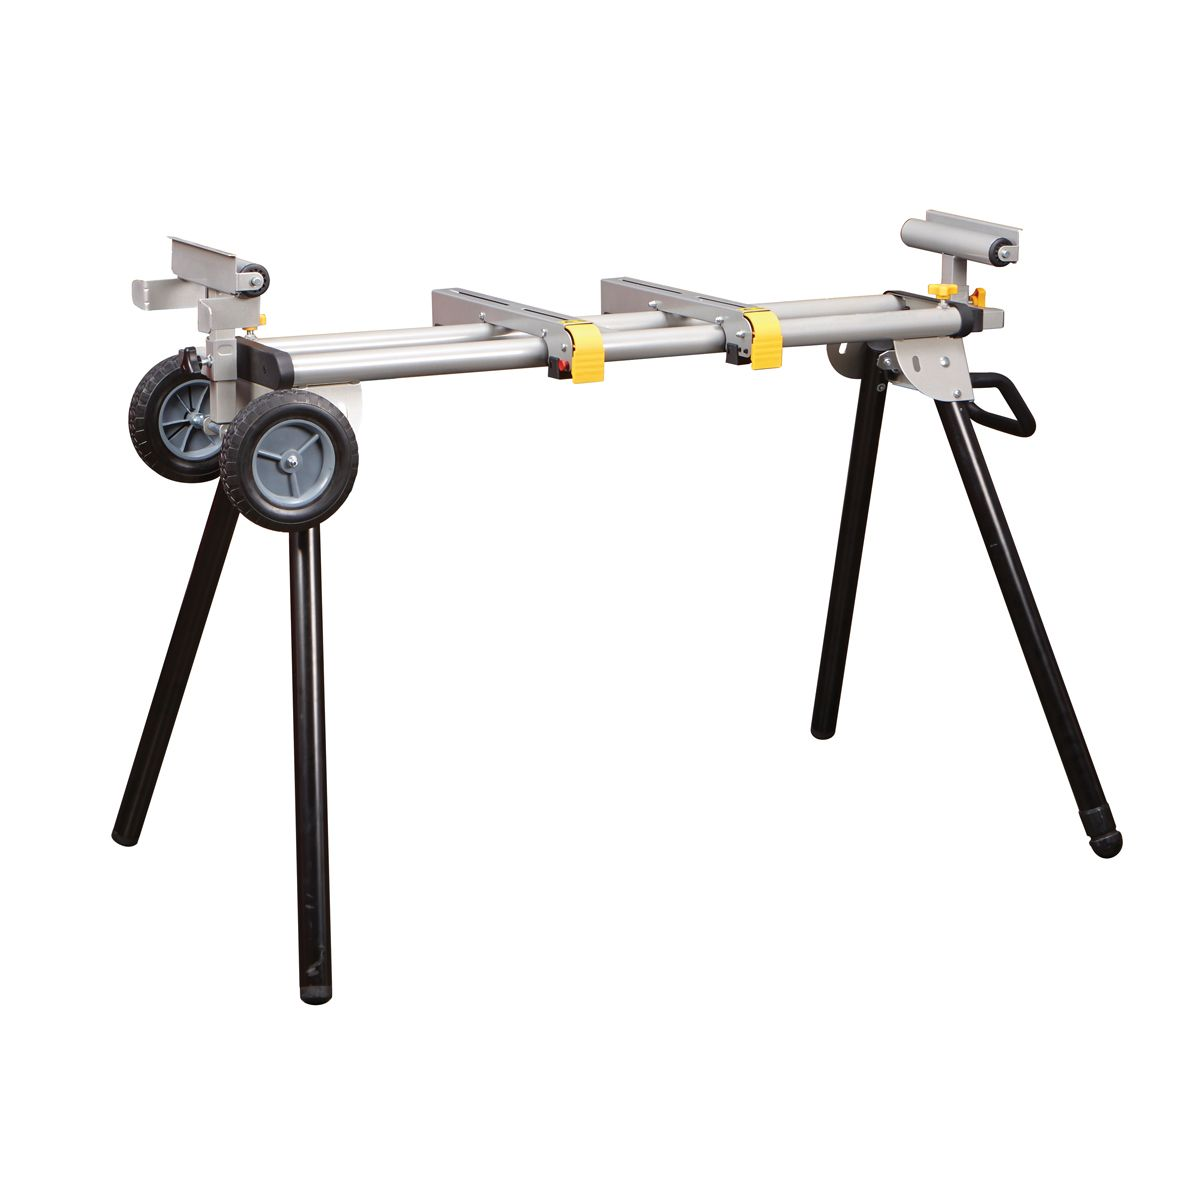 Heavy Duty Mobile Miter Saw Stand Mitre Saw Stand Woodworking Equipment Woodworking Tools